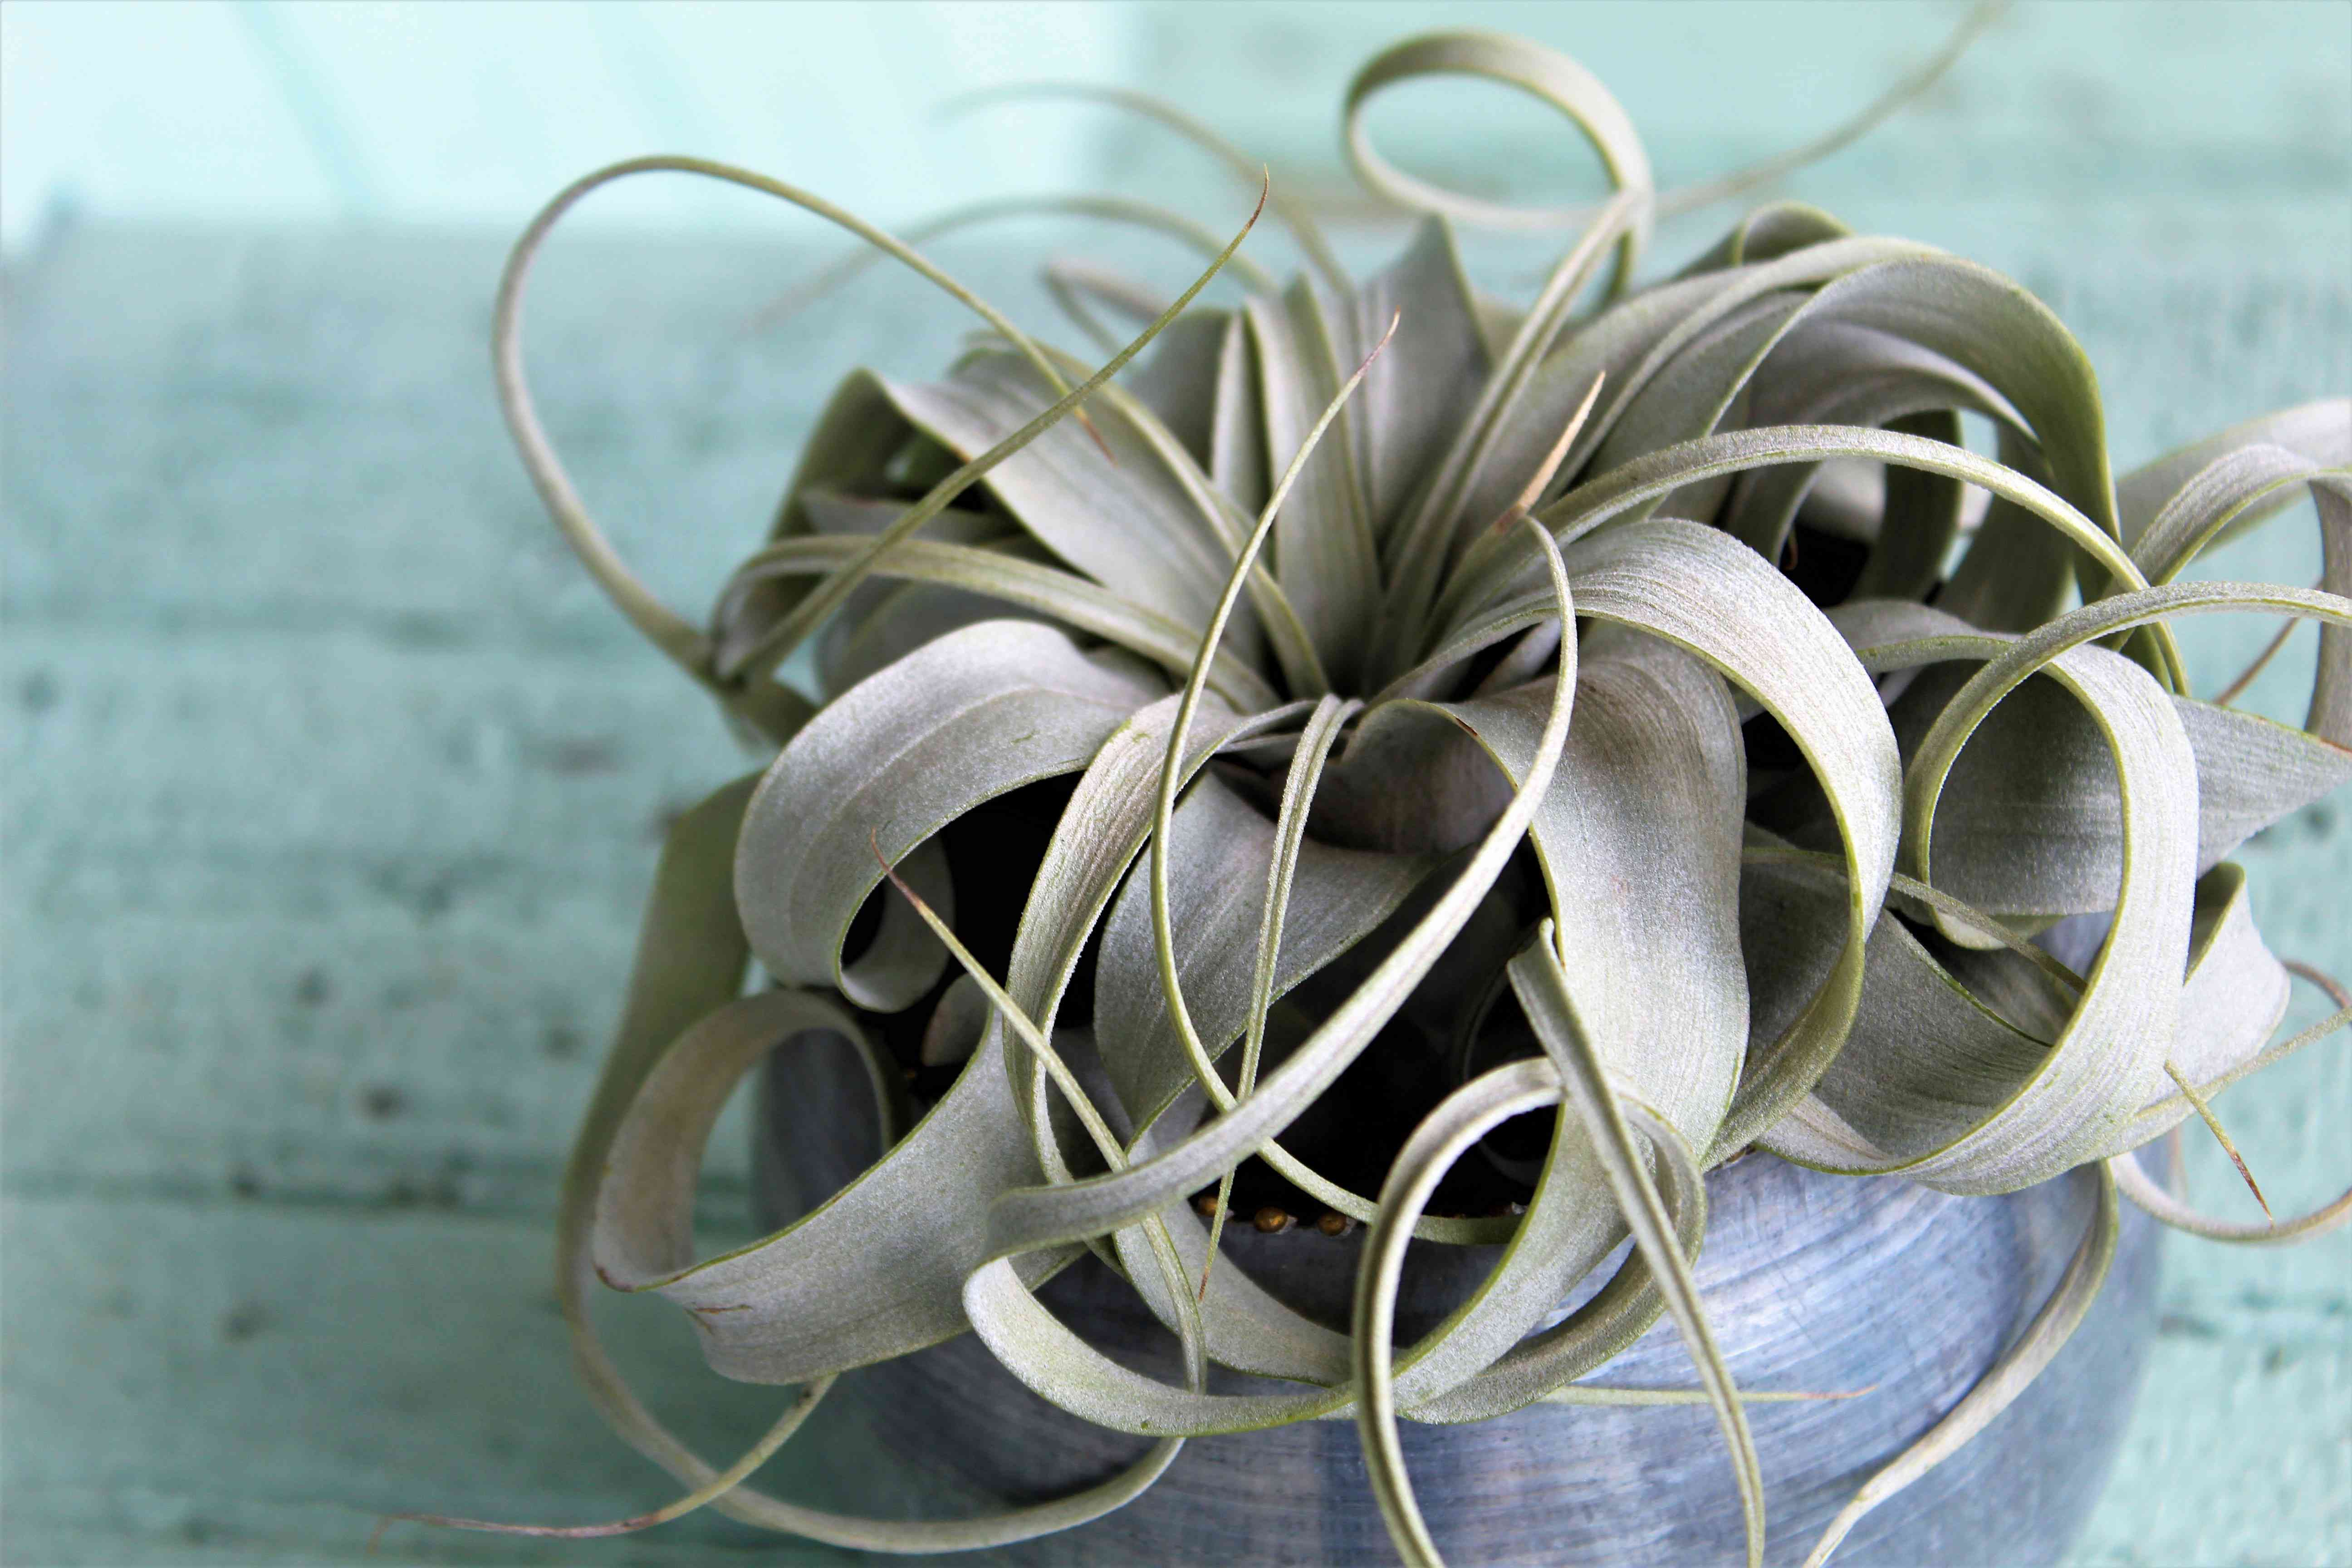 Xerographica air plant with curling silvery-green leaves